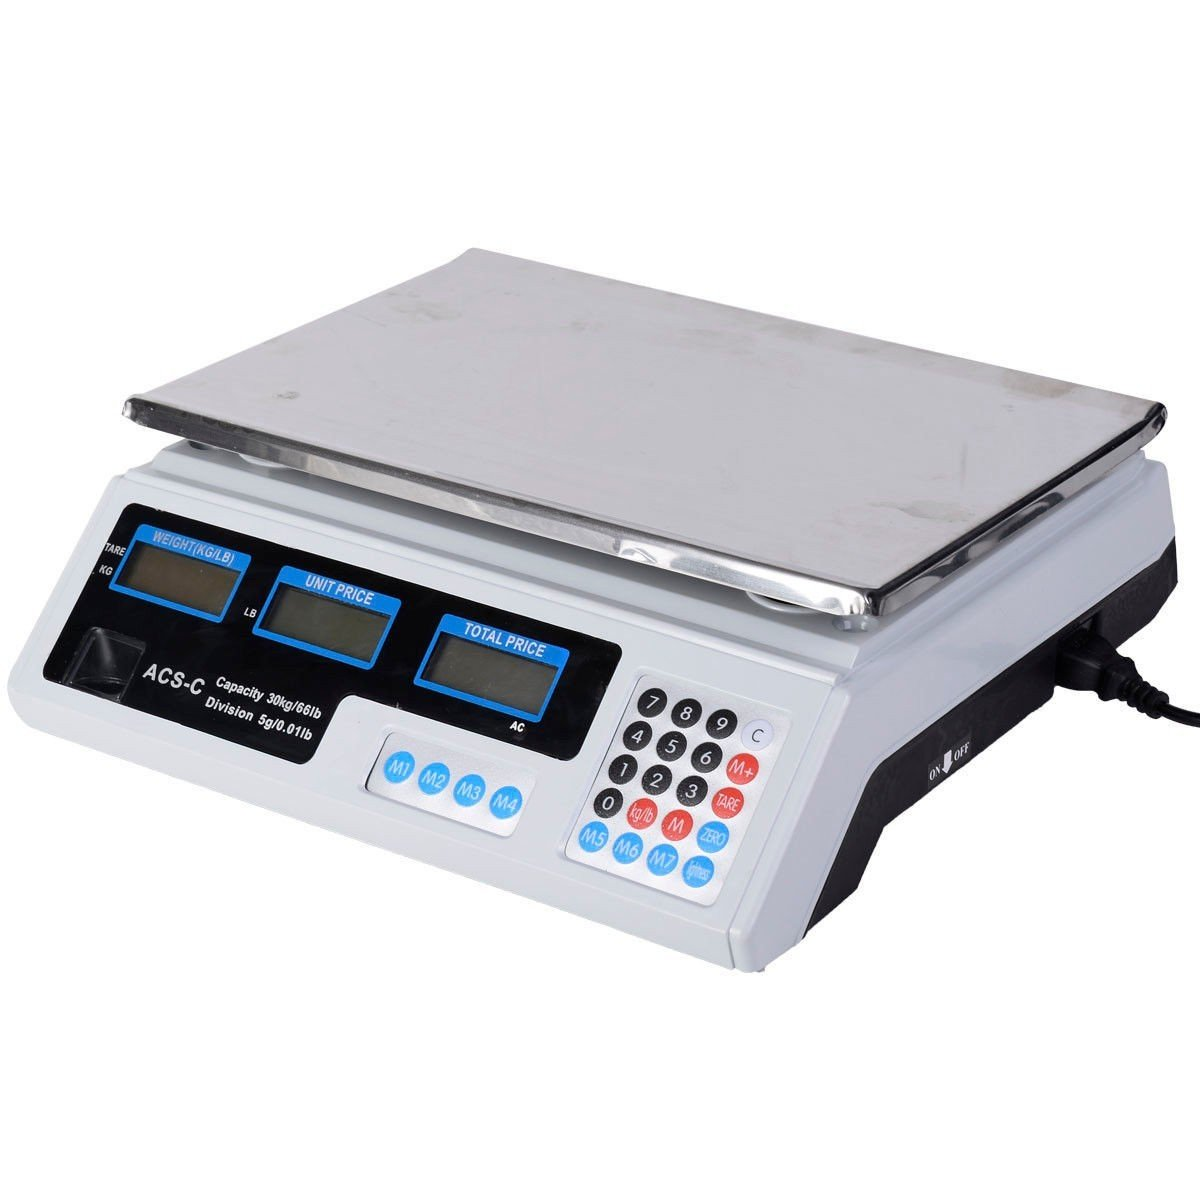 Apontus 66 LB Digital Scale Price Computing Deli Food Produce Electronic Counting Weight by Apontus